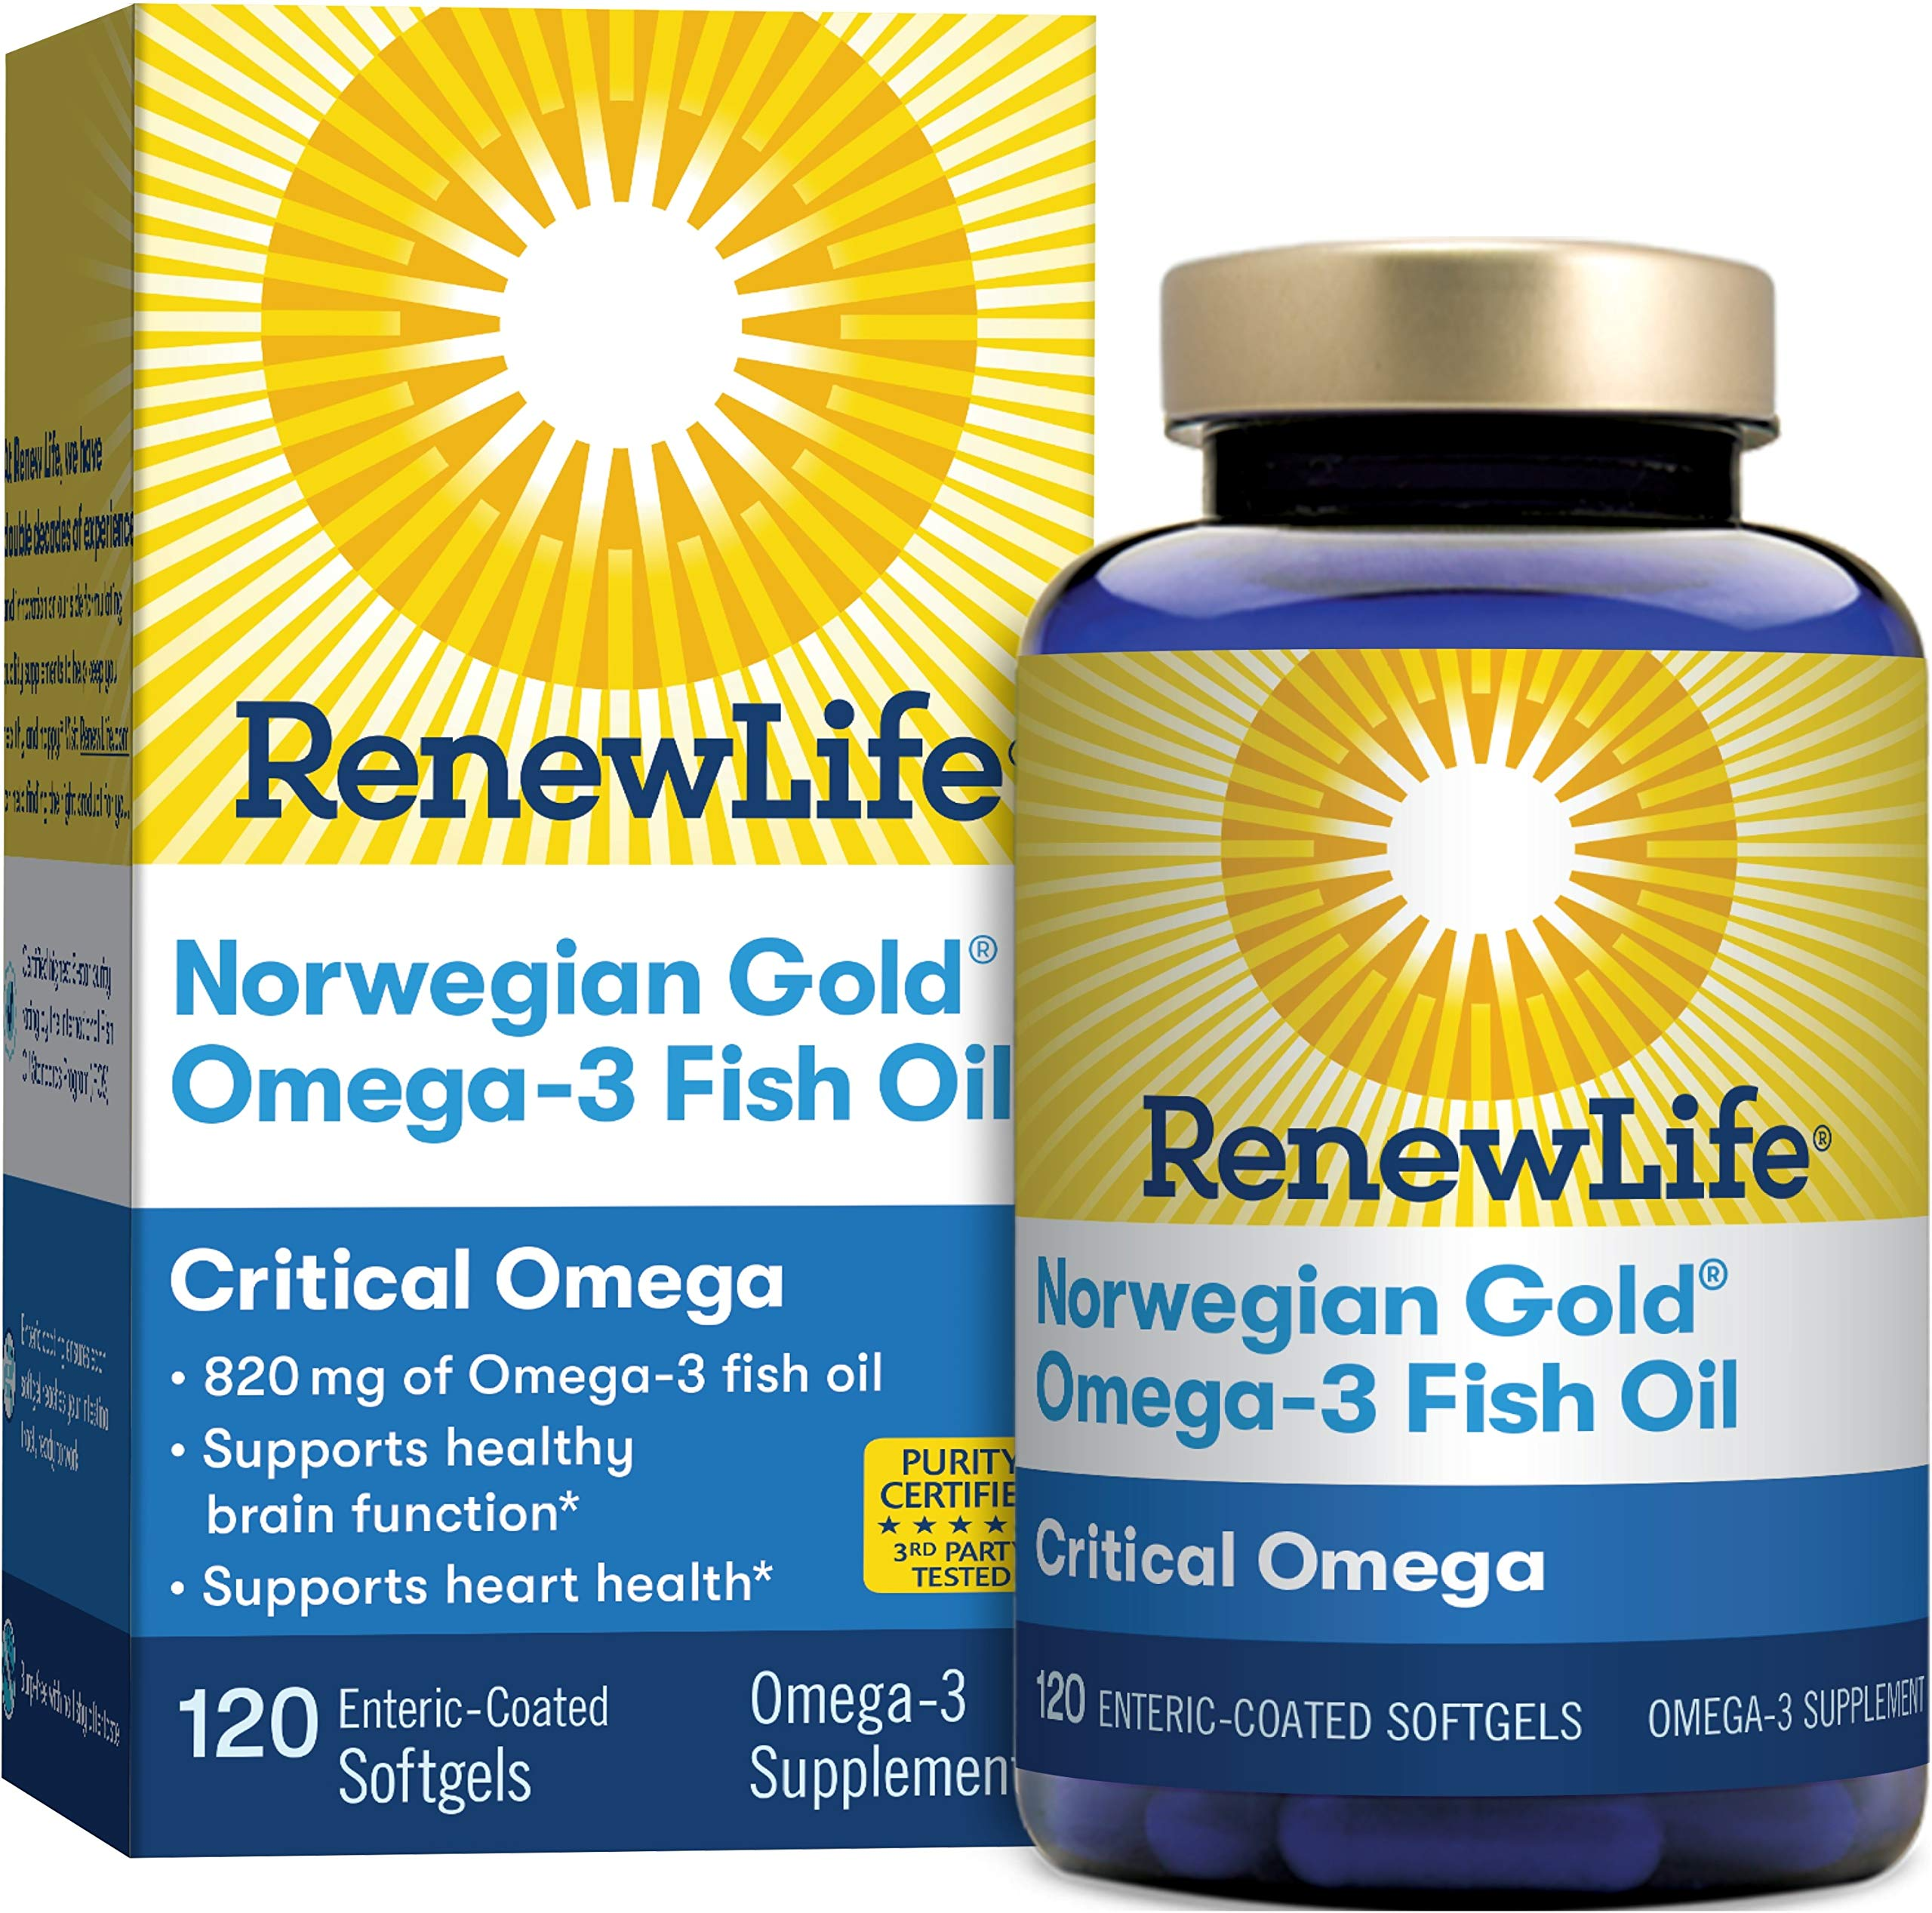 Renew Life Norwegian Gold Adult Fish Oil - Critical Omega, Fish Oil Omega-3 Supplement - gluten & dairy Free - 120 Burp-Free Softgel Capsules (Packaging May Vary) by Renew Life